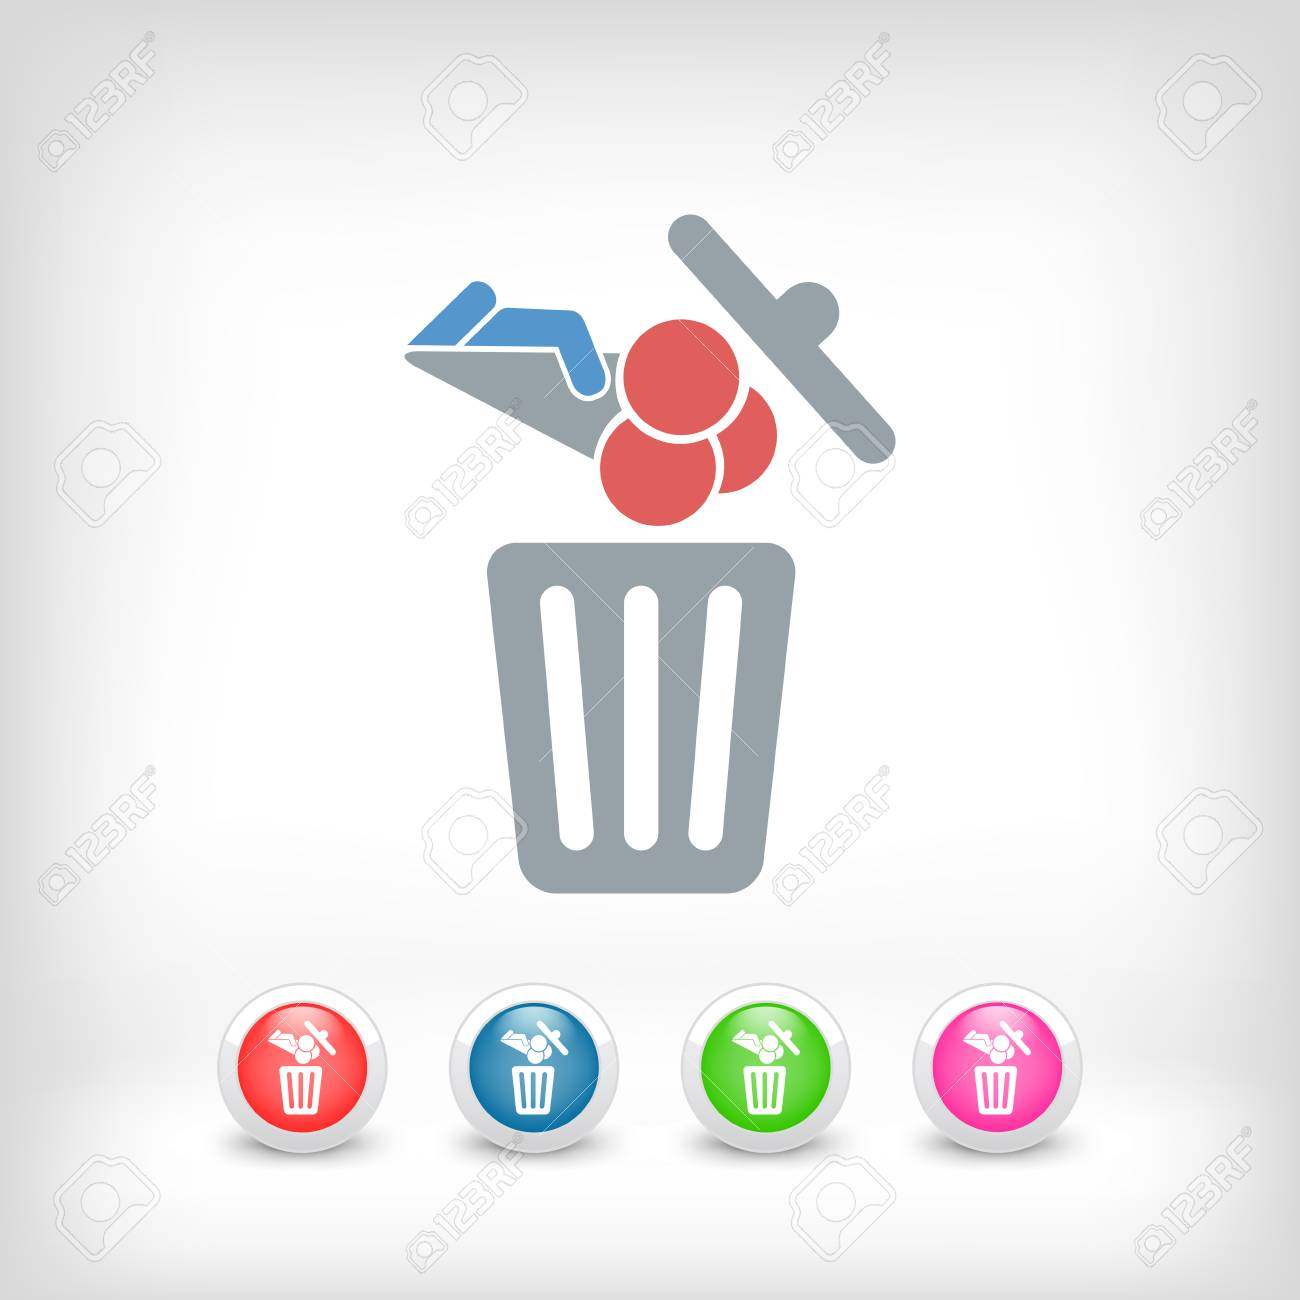 Food trash icon Stock Vector - 27151097